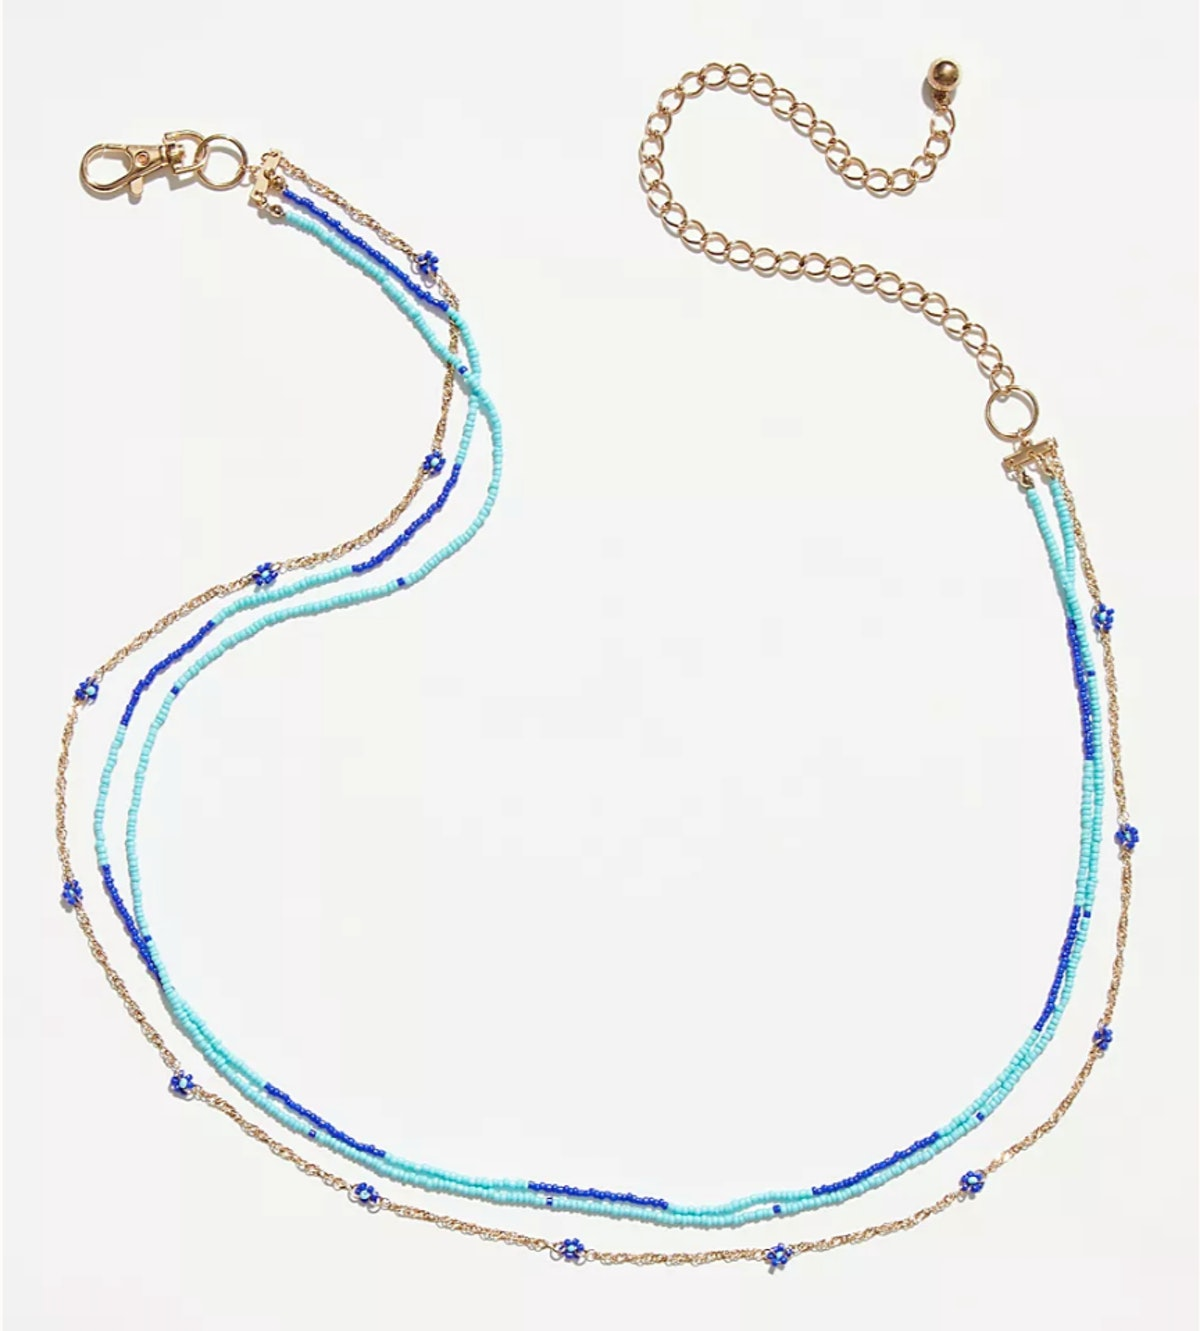 Free People's Copa Cabana Chain belt with colored beads.